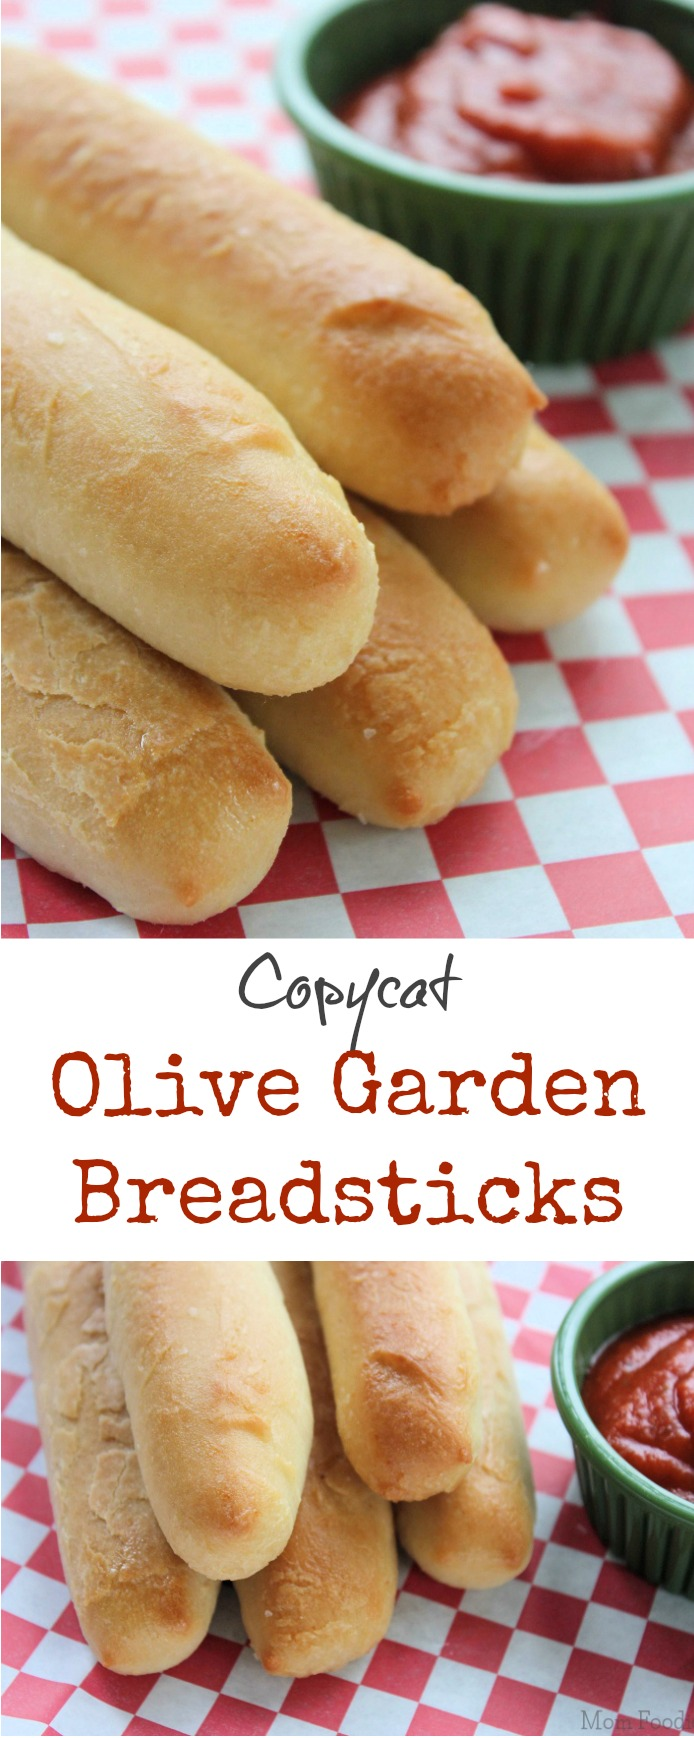 Copycat Olive Garden Breadsticks Homemade recipe